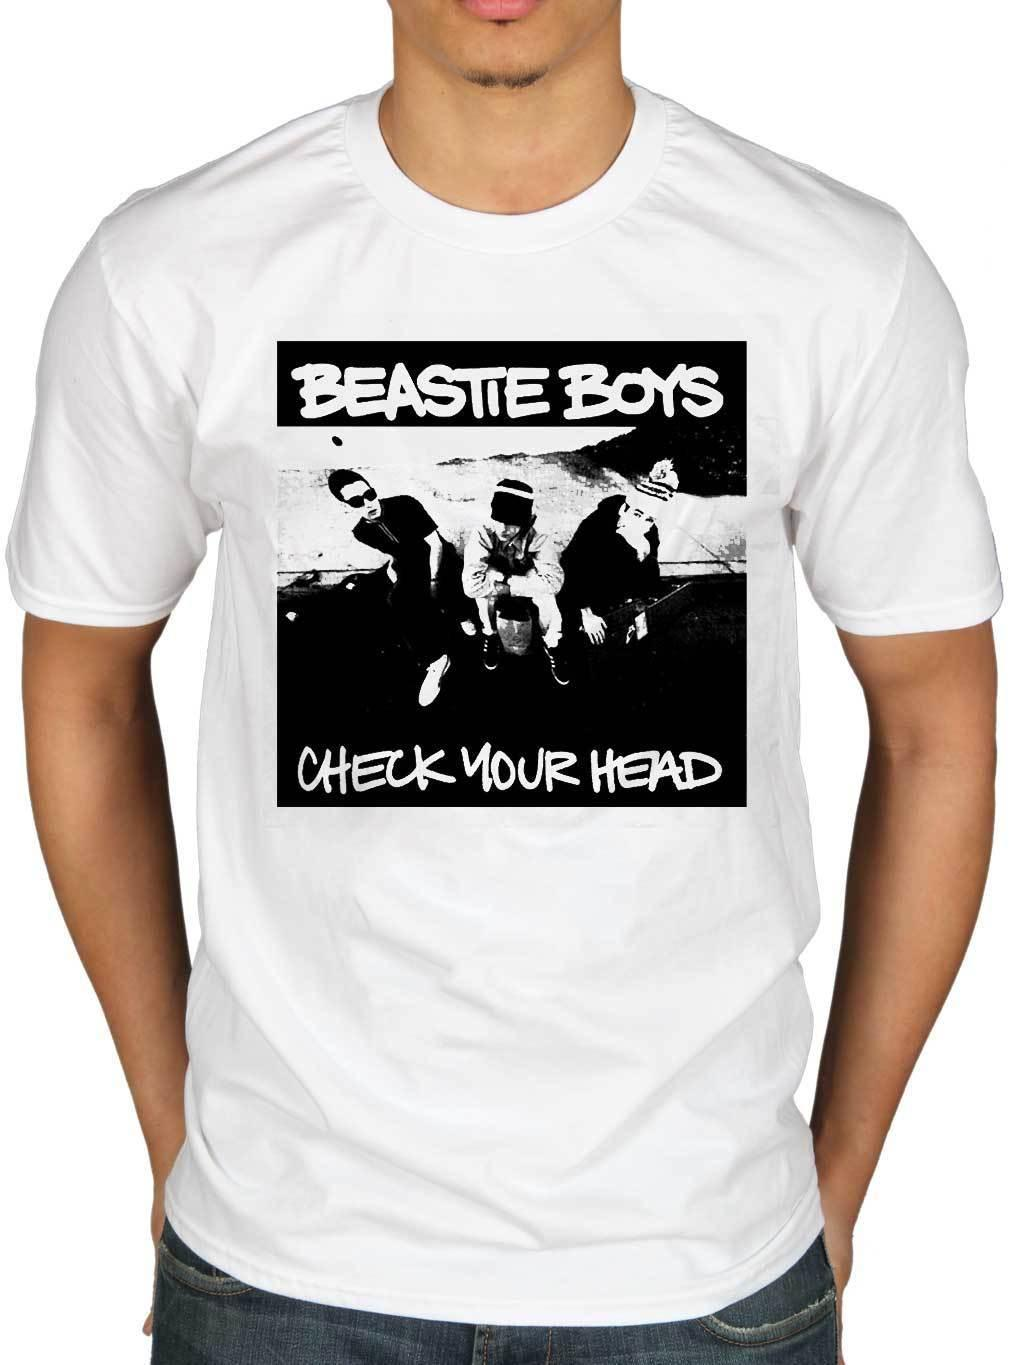 ef5c5a036 Official Beastie Boys Check Your Head Graphic T Shirt Hip Hop Beastie B Boy  Funny 100% Cotton T Shirt Style Round Style Tshirt 1 T Shirt T Shirt And  Shirt ...